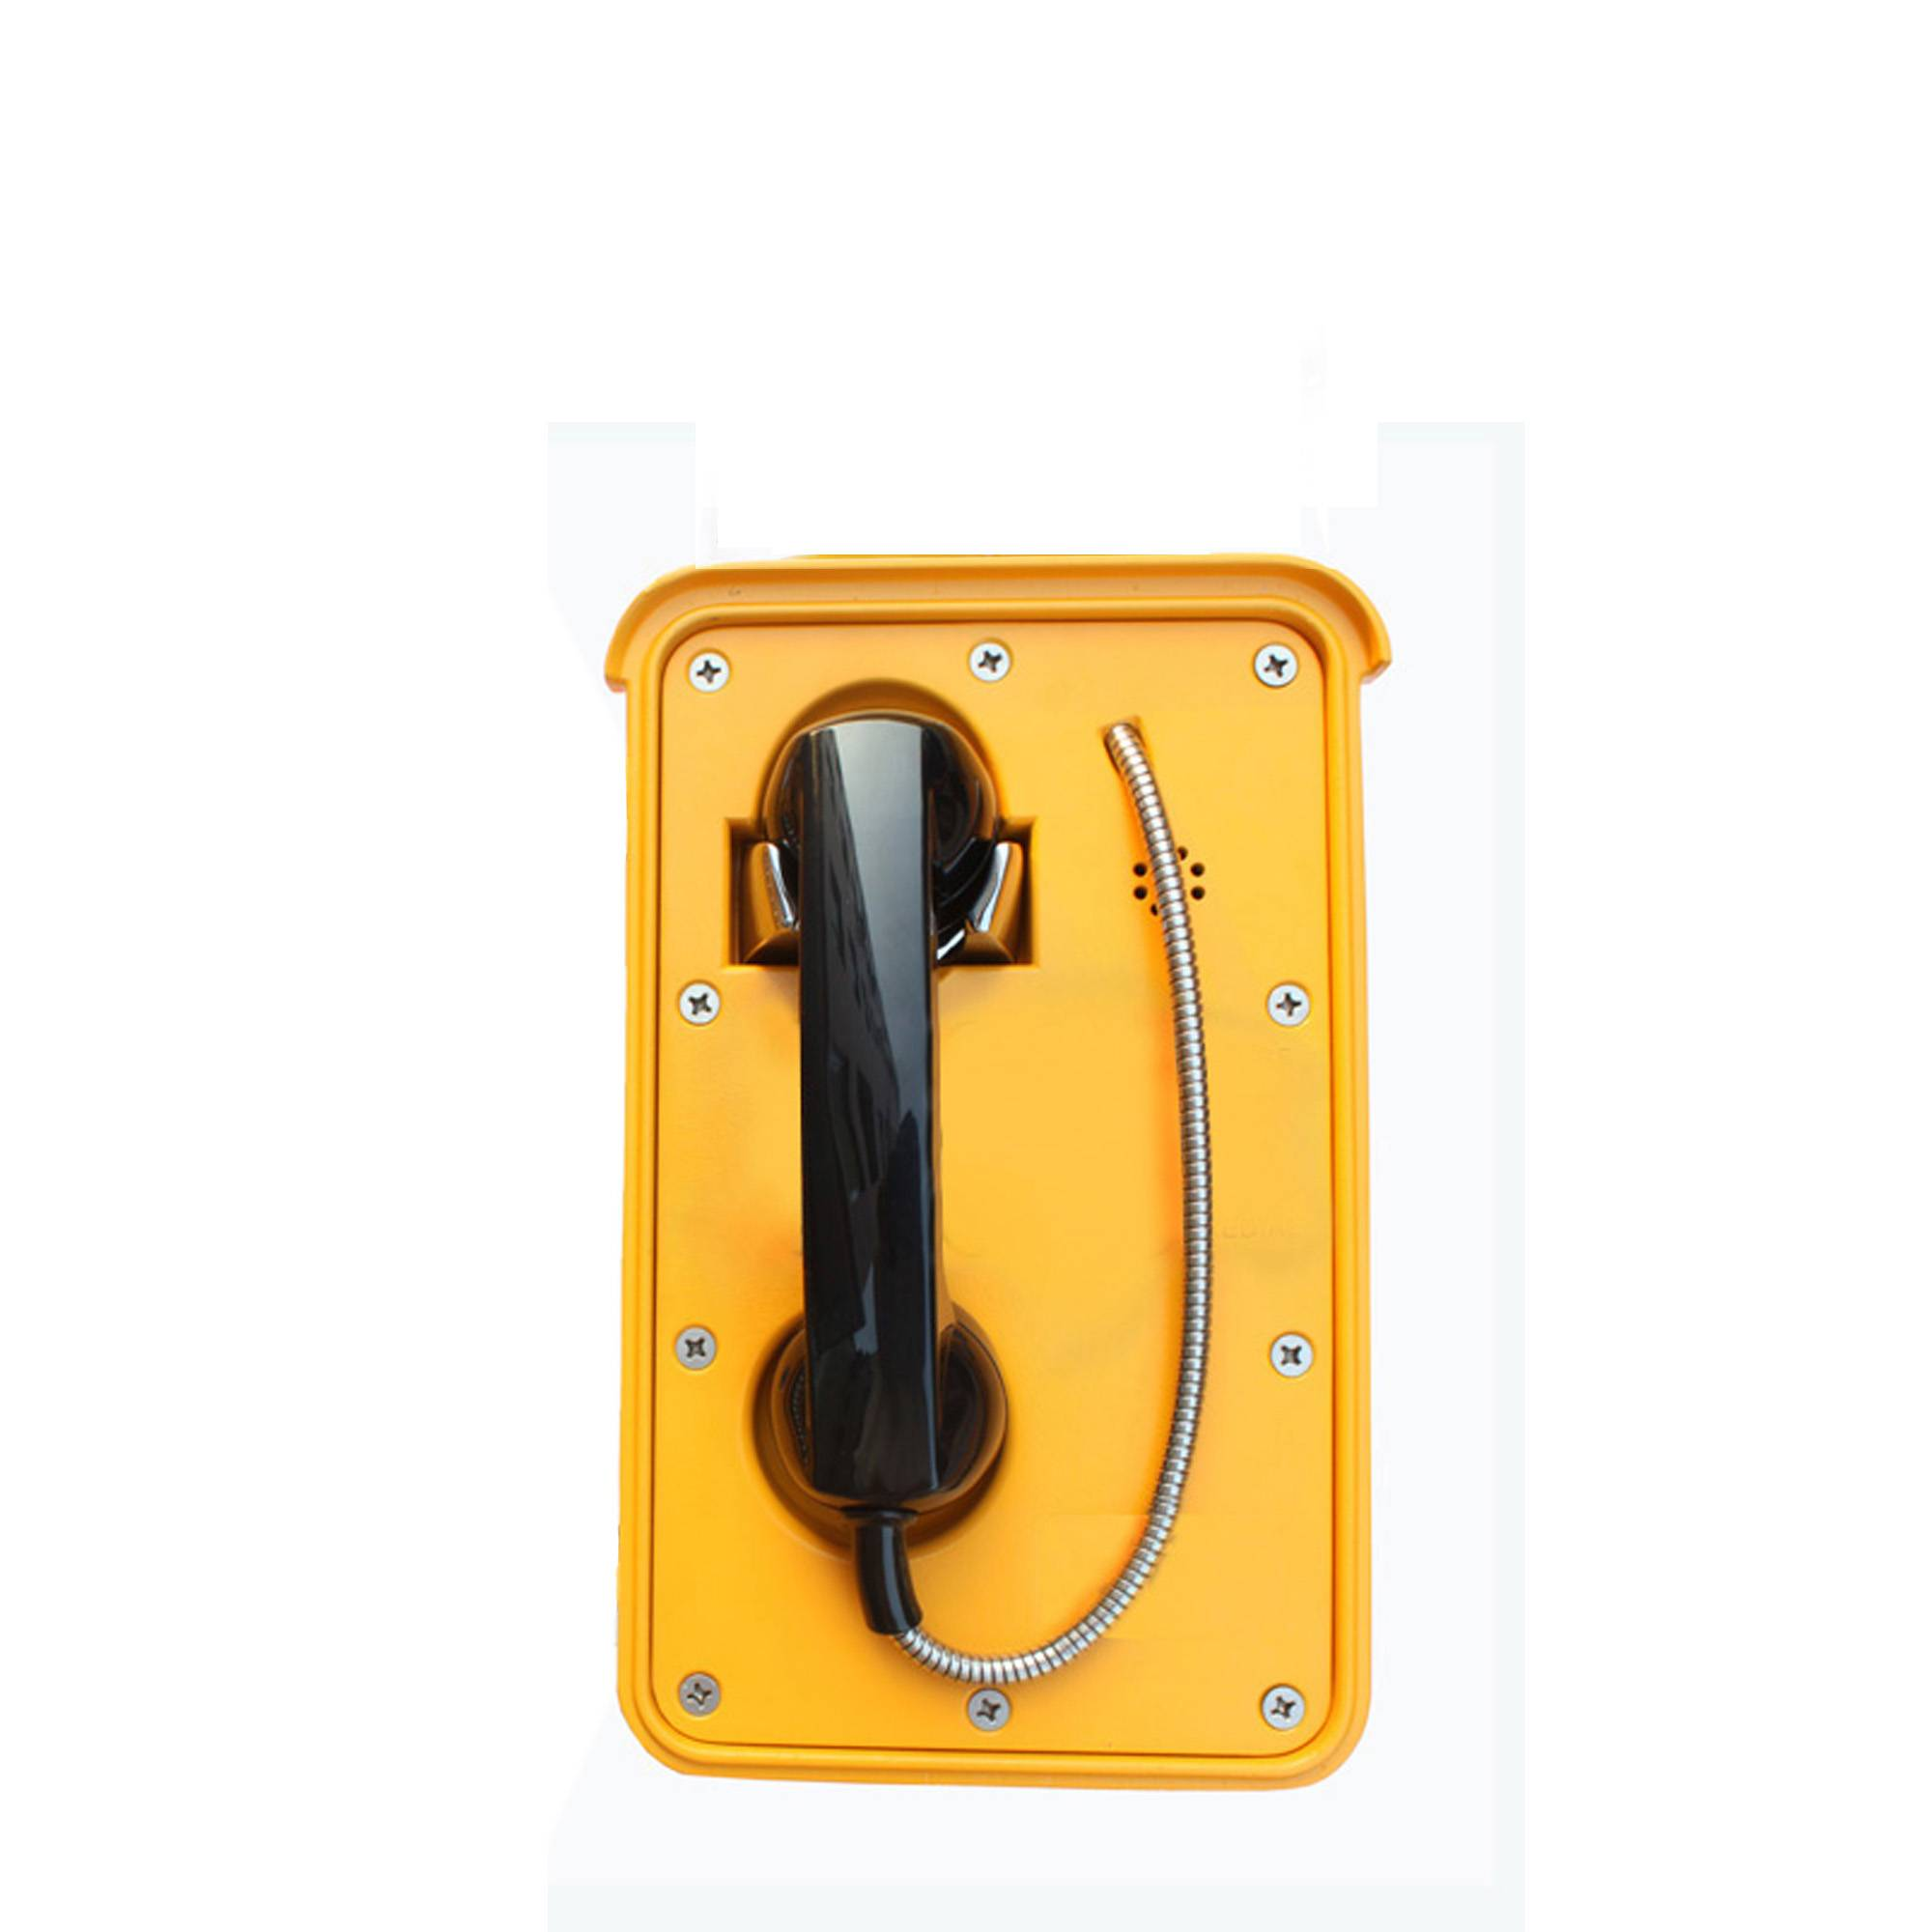 auto-dial waterproof telephone without dial pad